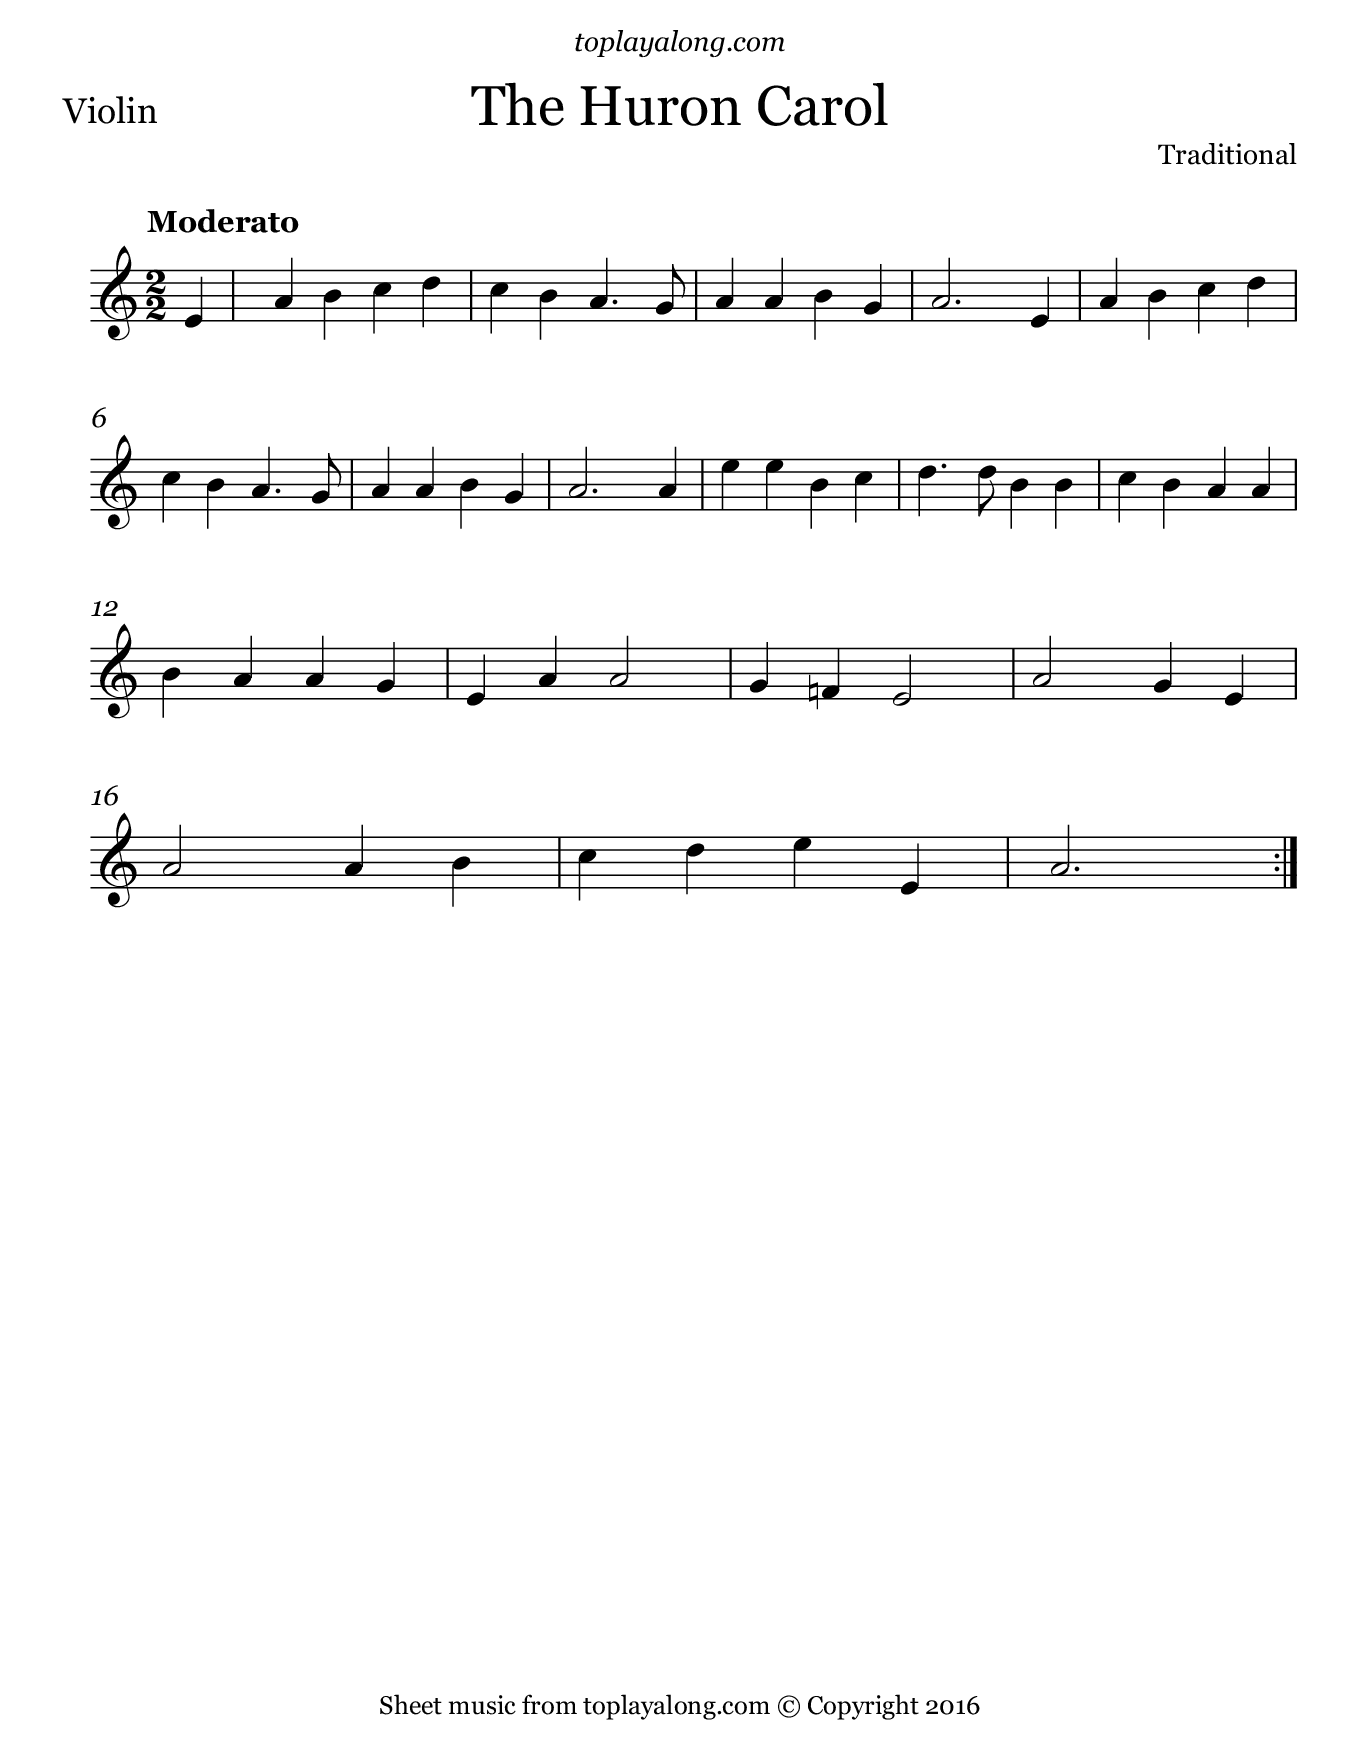 Huron Carol. Sheet music for Violin, page 1.